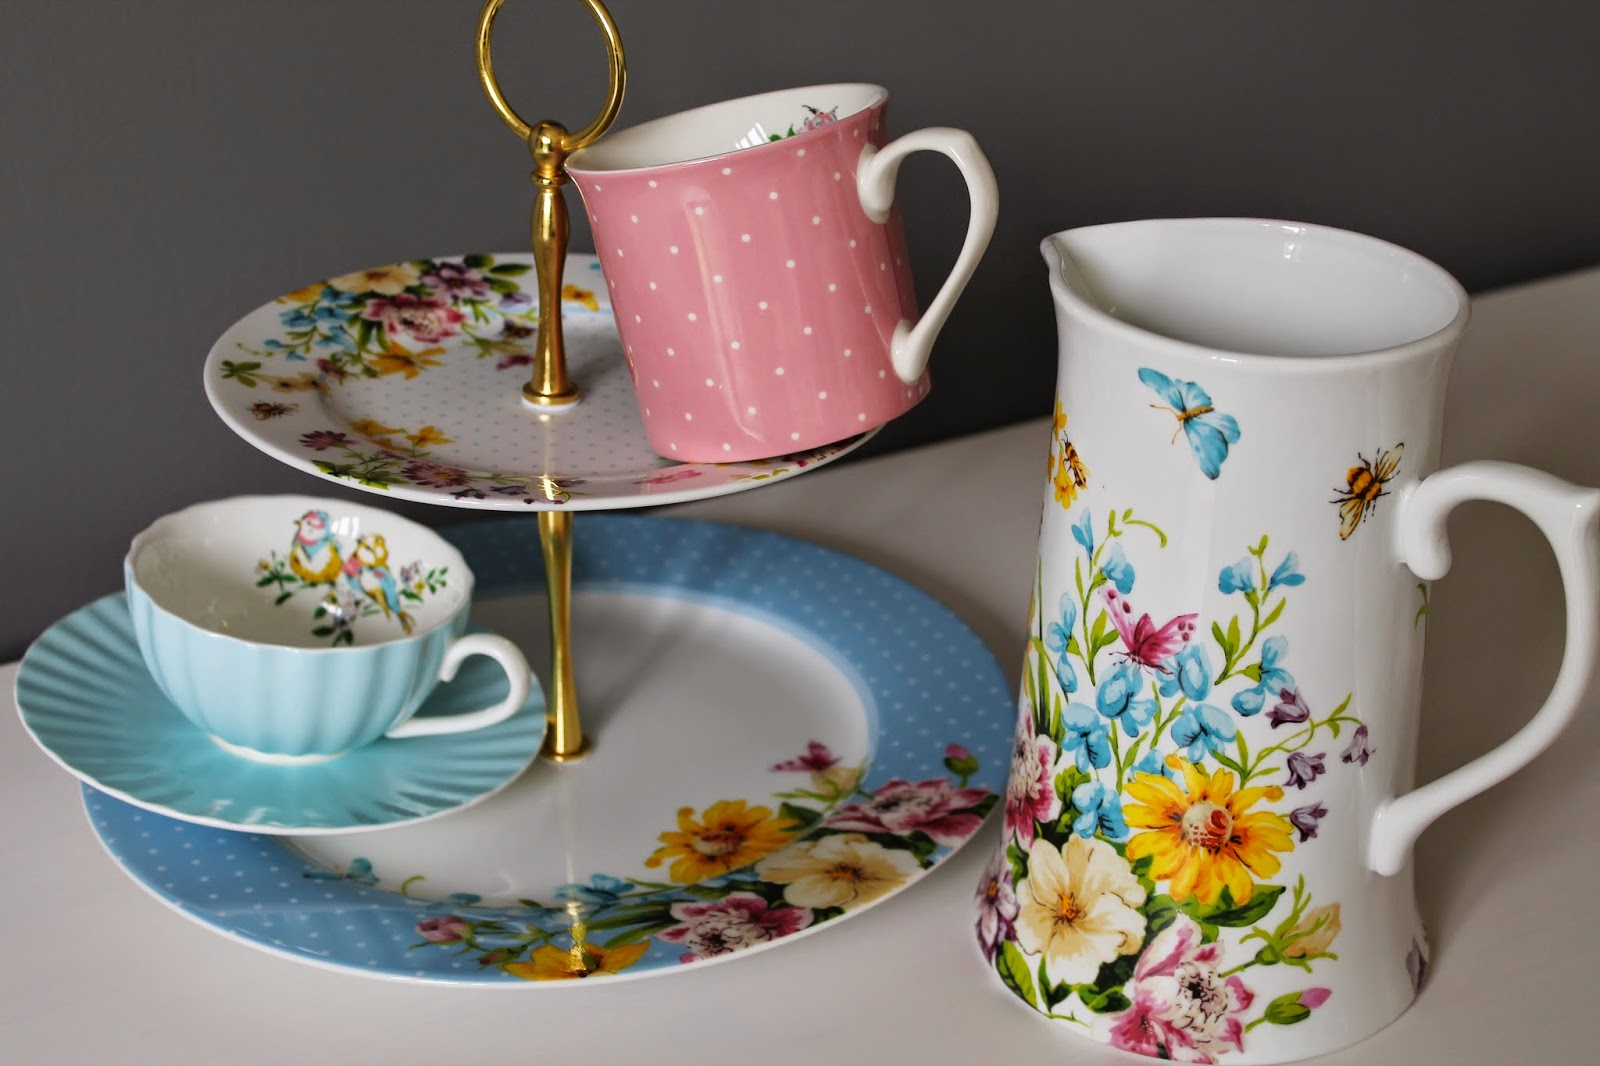 English Table Tea Party Review - Tea Stand, Jug, Tea Cup, Katie Alice